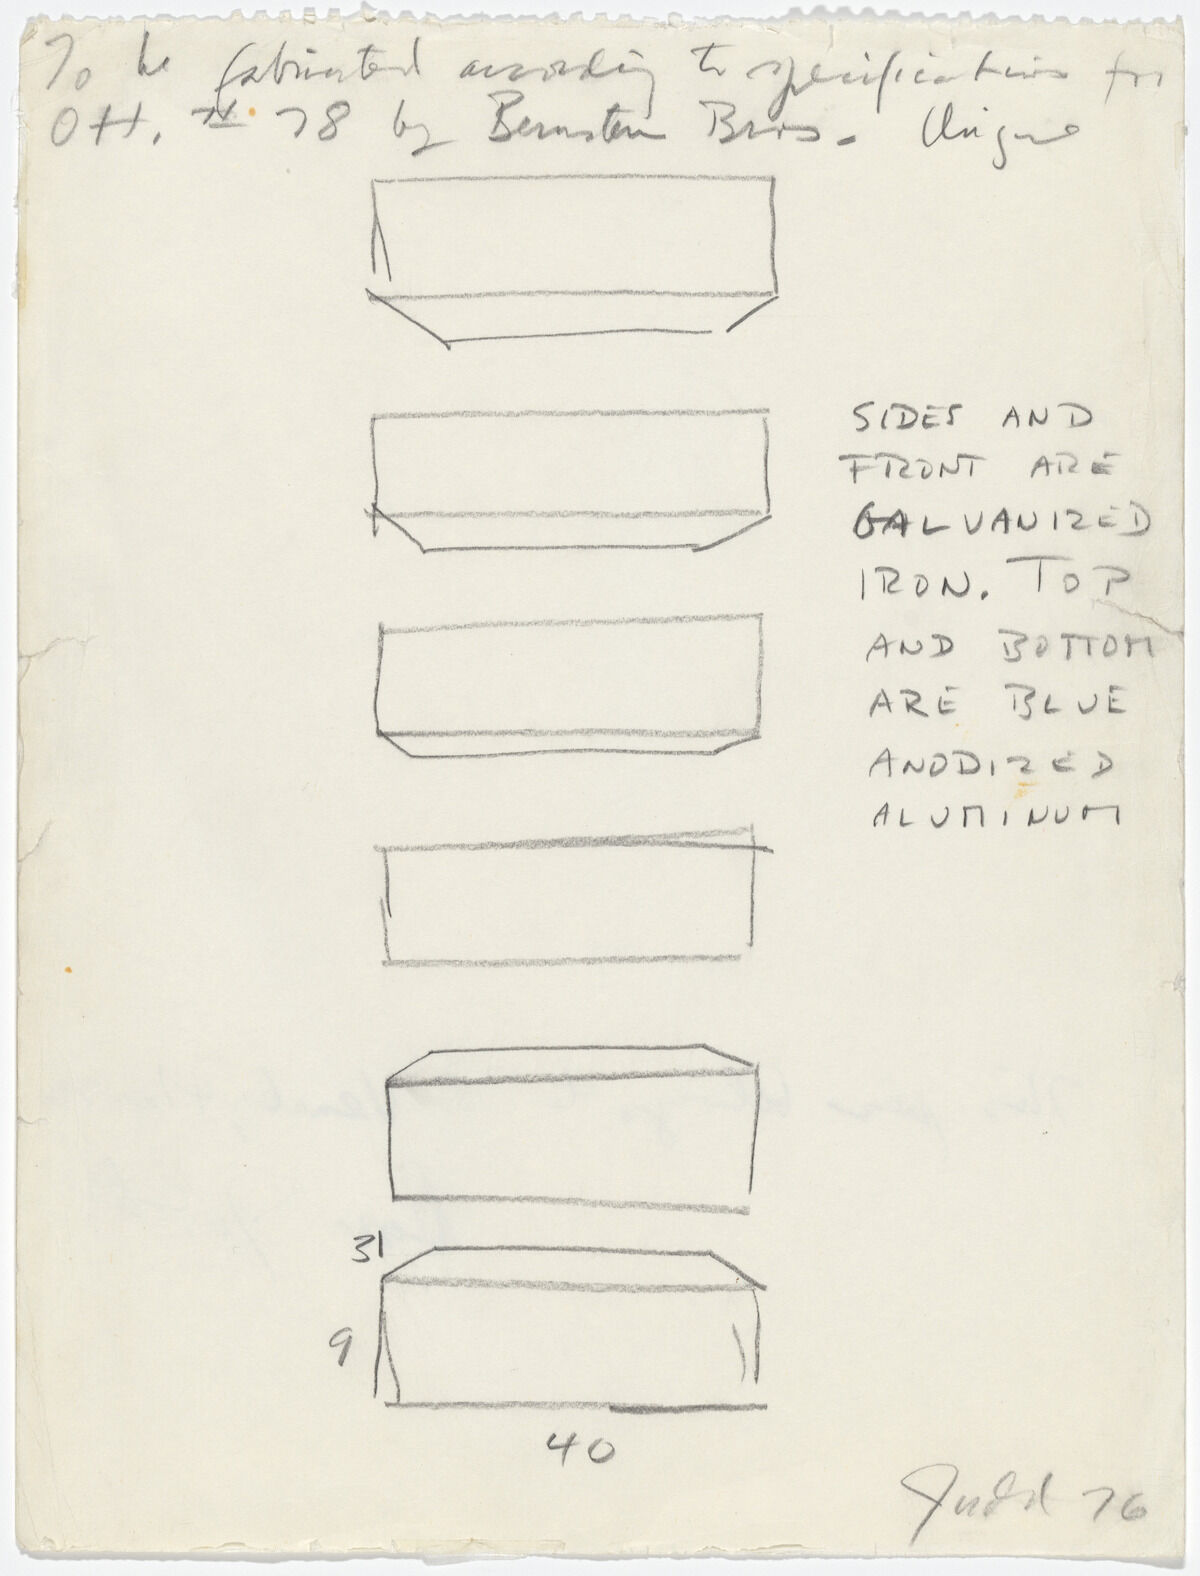 Donald Judd, Instruction Drawing for Otterlo Show Wall Sculpture, 1976, pencil on paper. Gift of the Gilbert B. and Lila Silverman Instruction Drawing Collection, Detroit. © 2019 Judd Foundation / Artists Rights Society (ARS), New York.